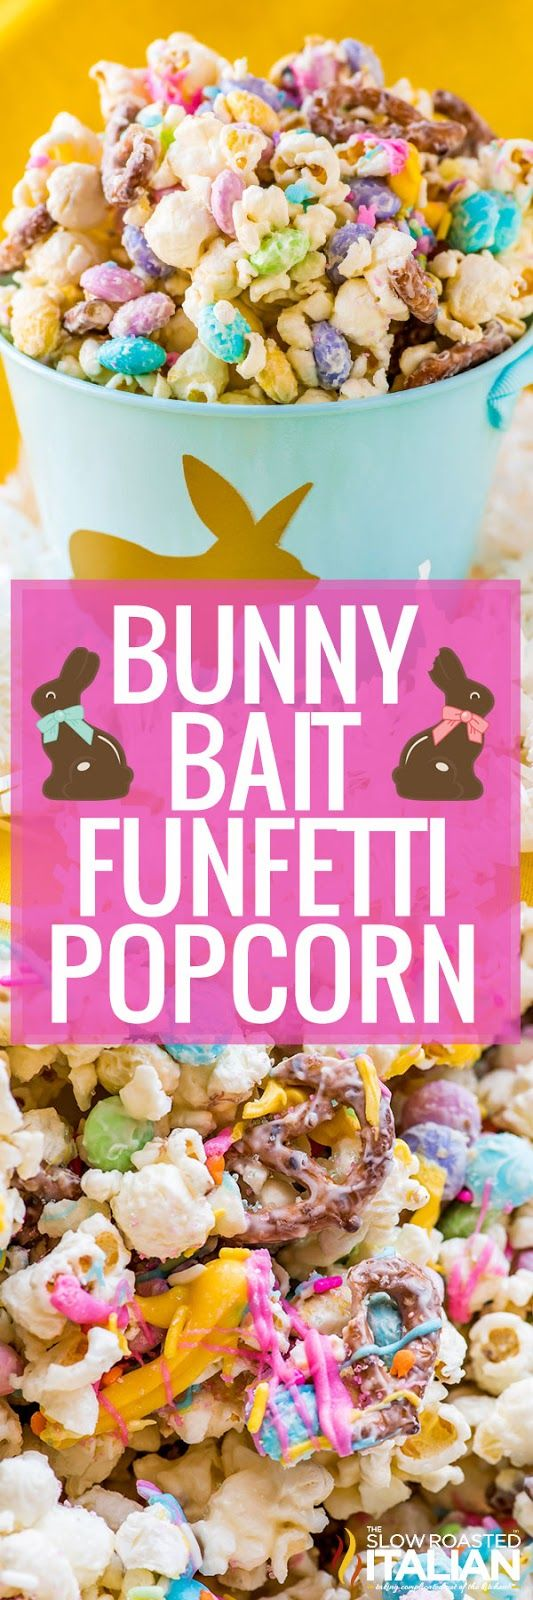 Bunny Bait Funfetti Popcorn is a fun and festive recipe that comes together in 15 minutes. It is perfect for Easter and the kids are going to love it! And the adults too.